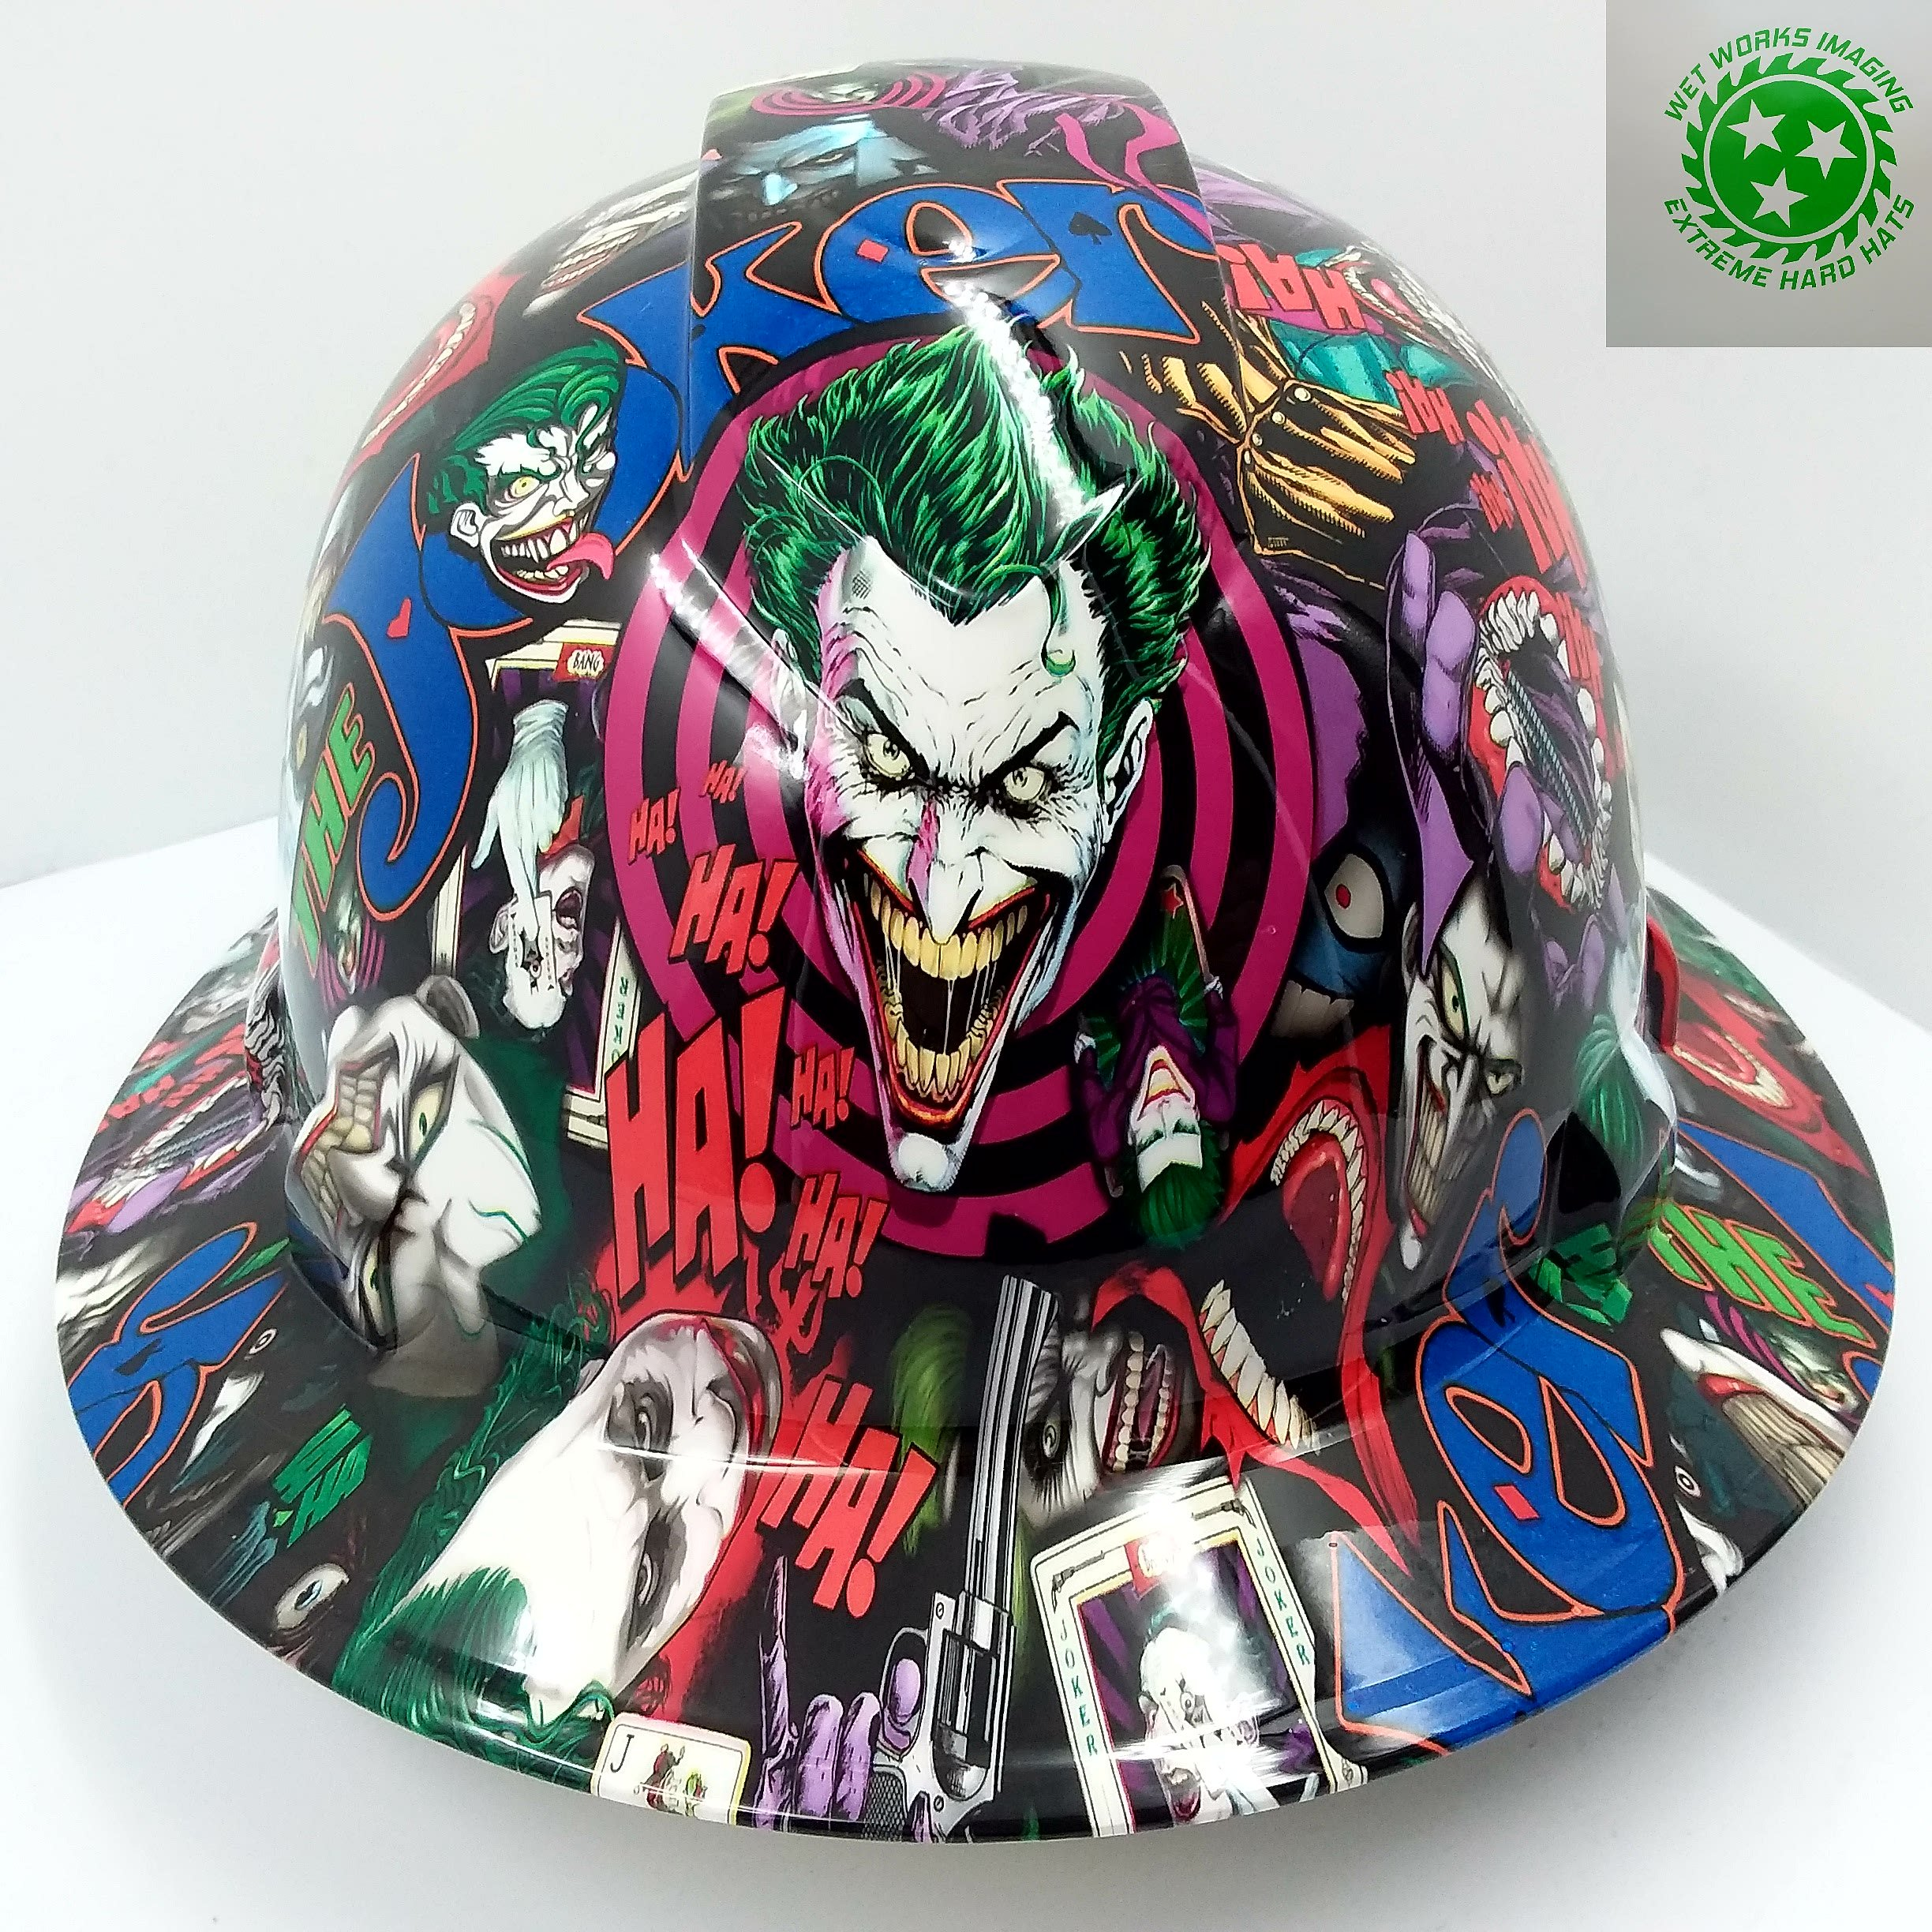 Wet Works Imaging Customized Pyramex Full Brim Full Color Joker Hard HAT with Ratcheting Suspension by Wet Works Imaging